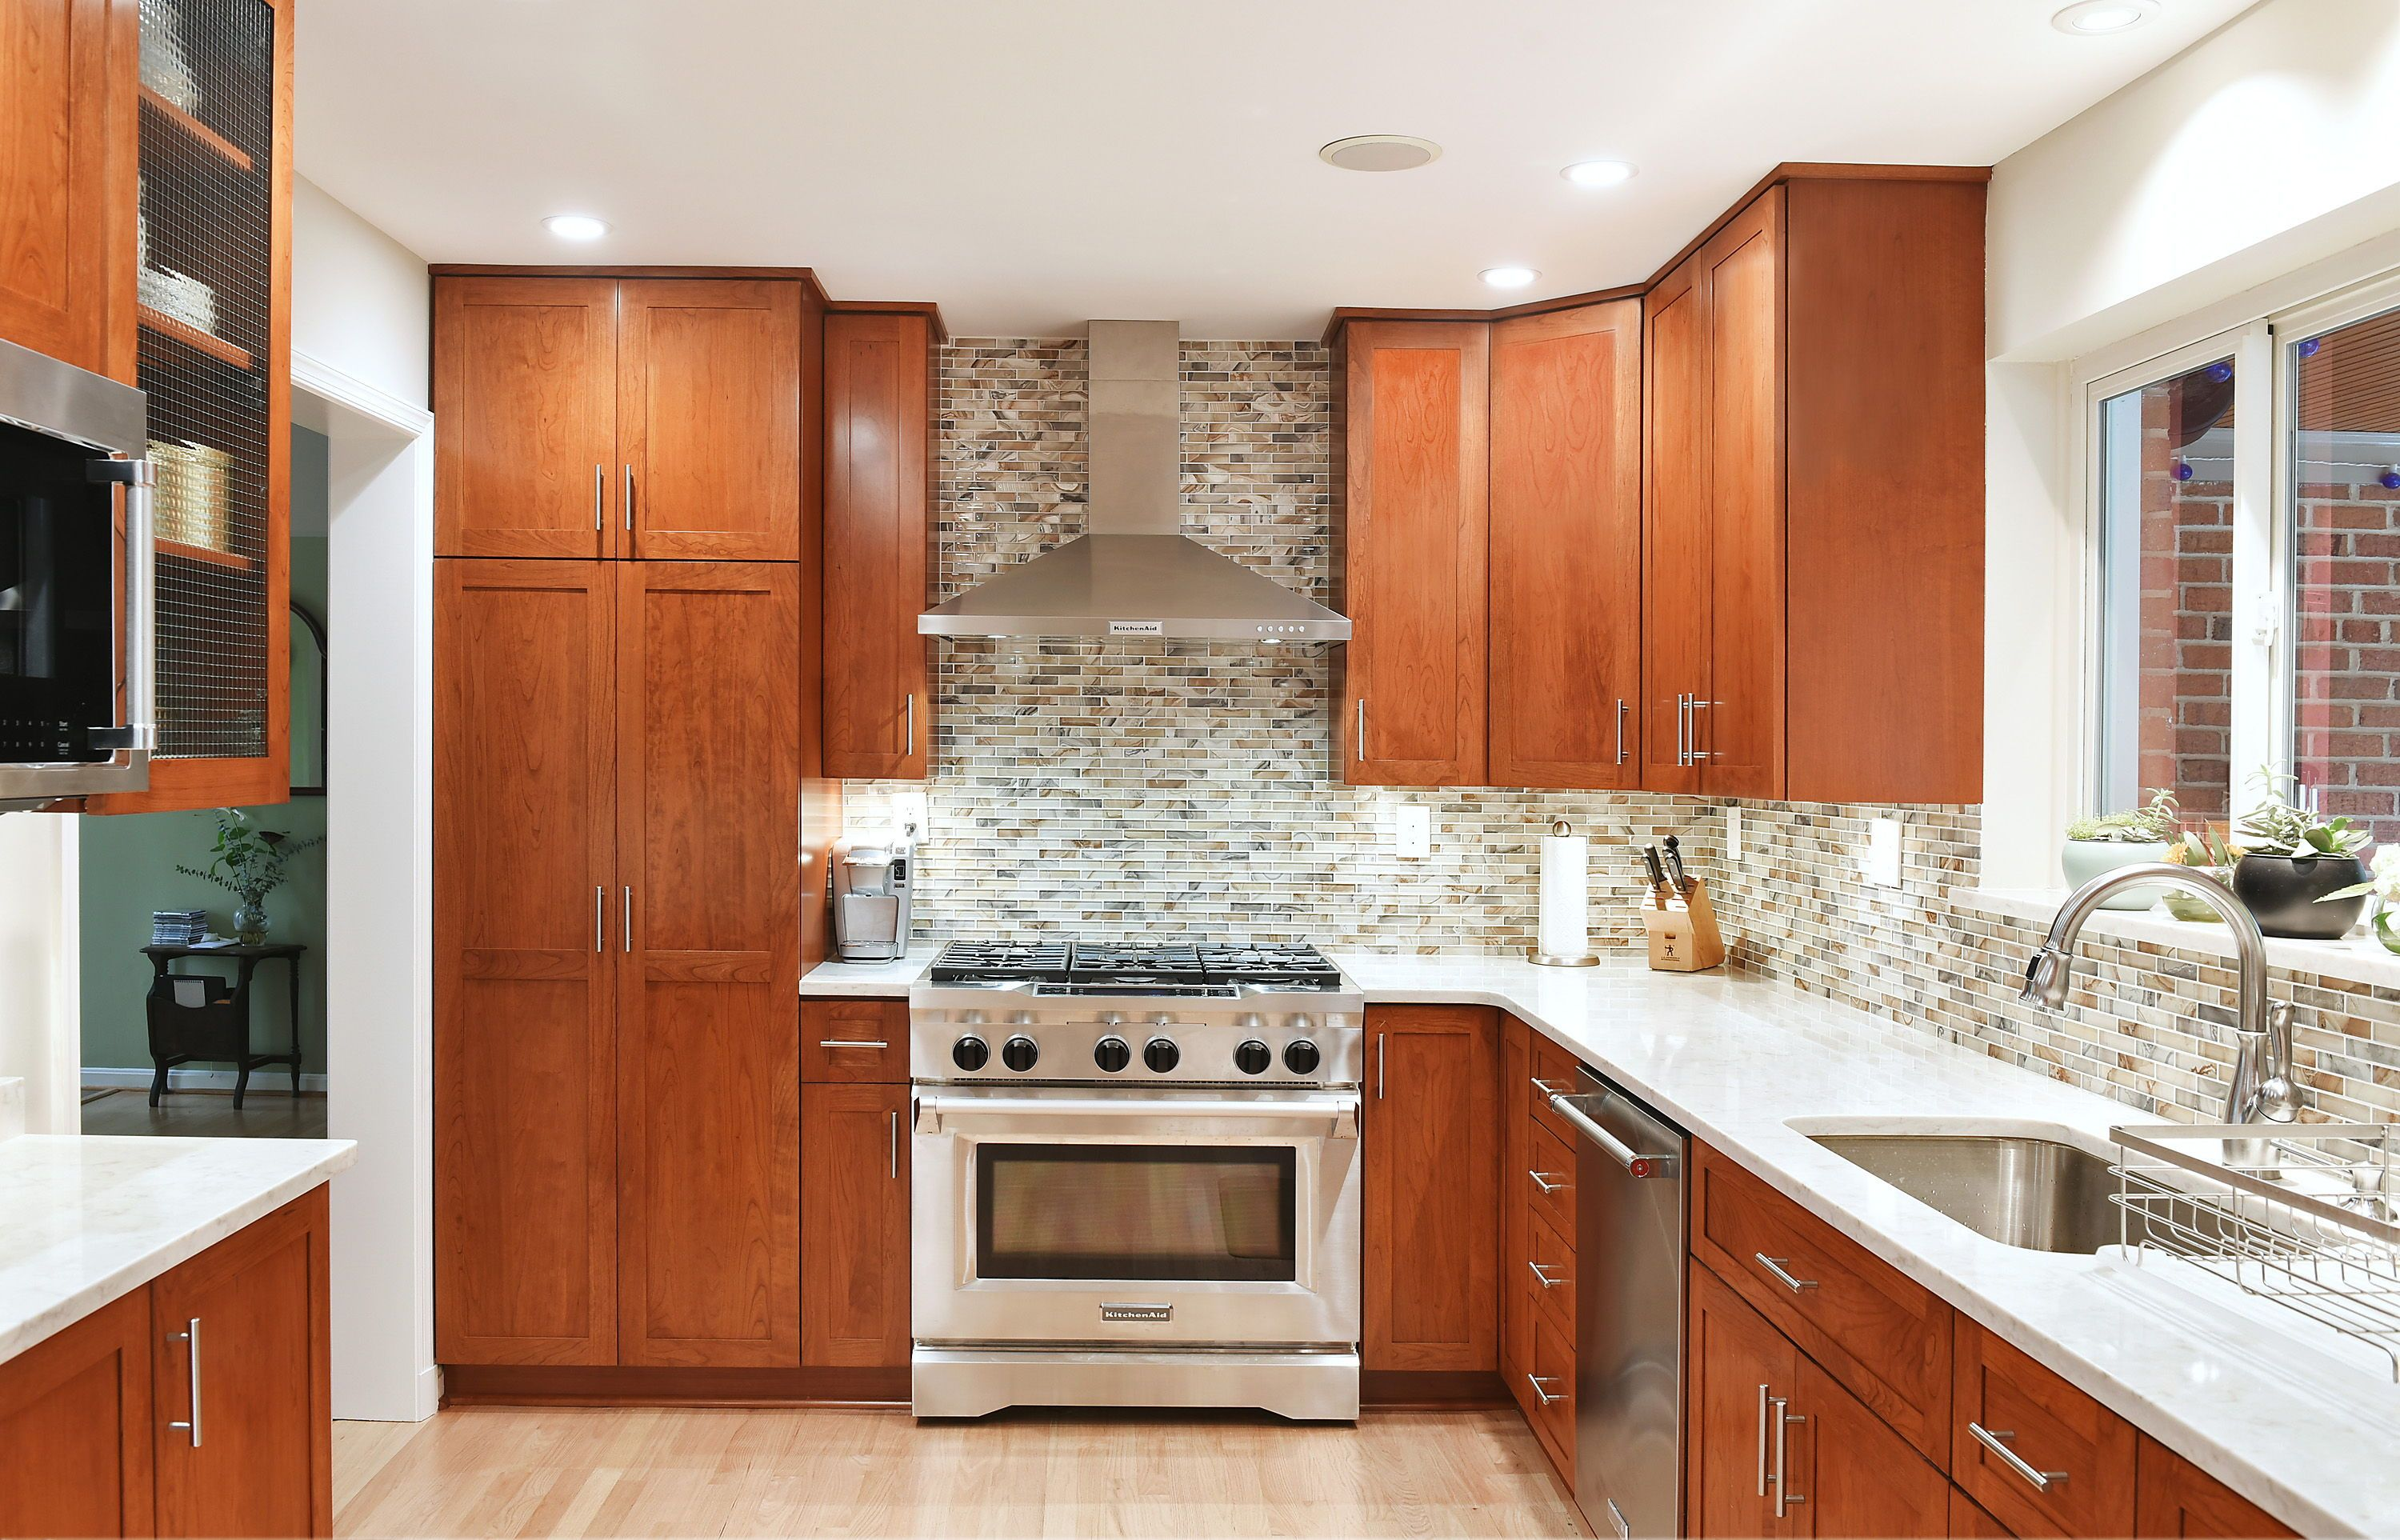 Kensington Md K S Renewal Systems Llc In 2020 Kitchen Cabinets New Kitchen Cabinets Refacing Kitchen Cabinets